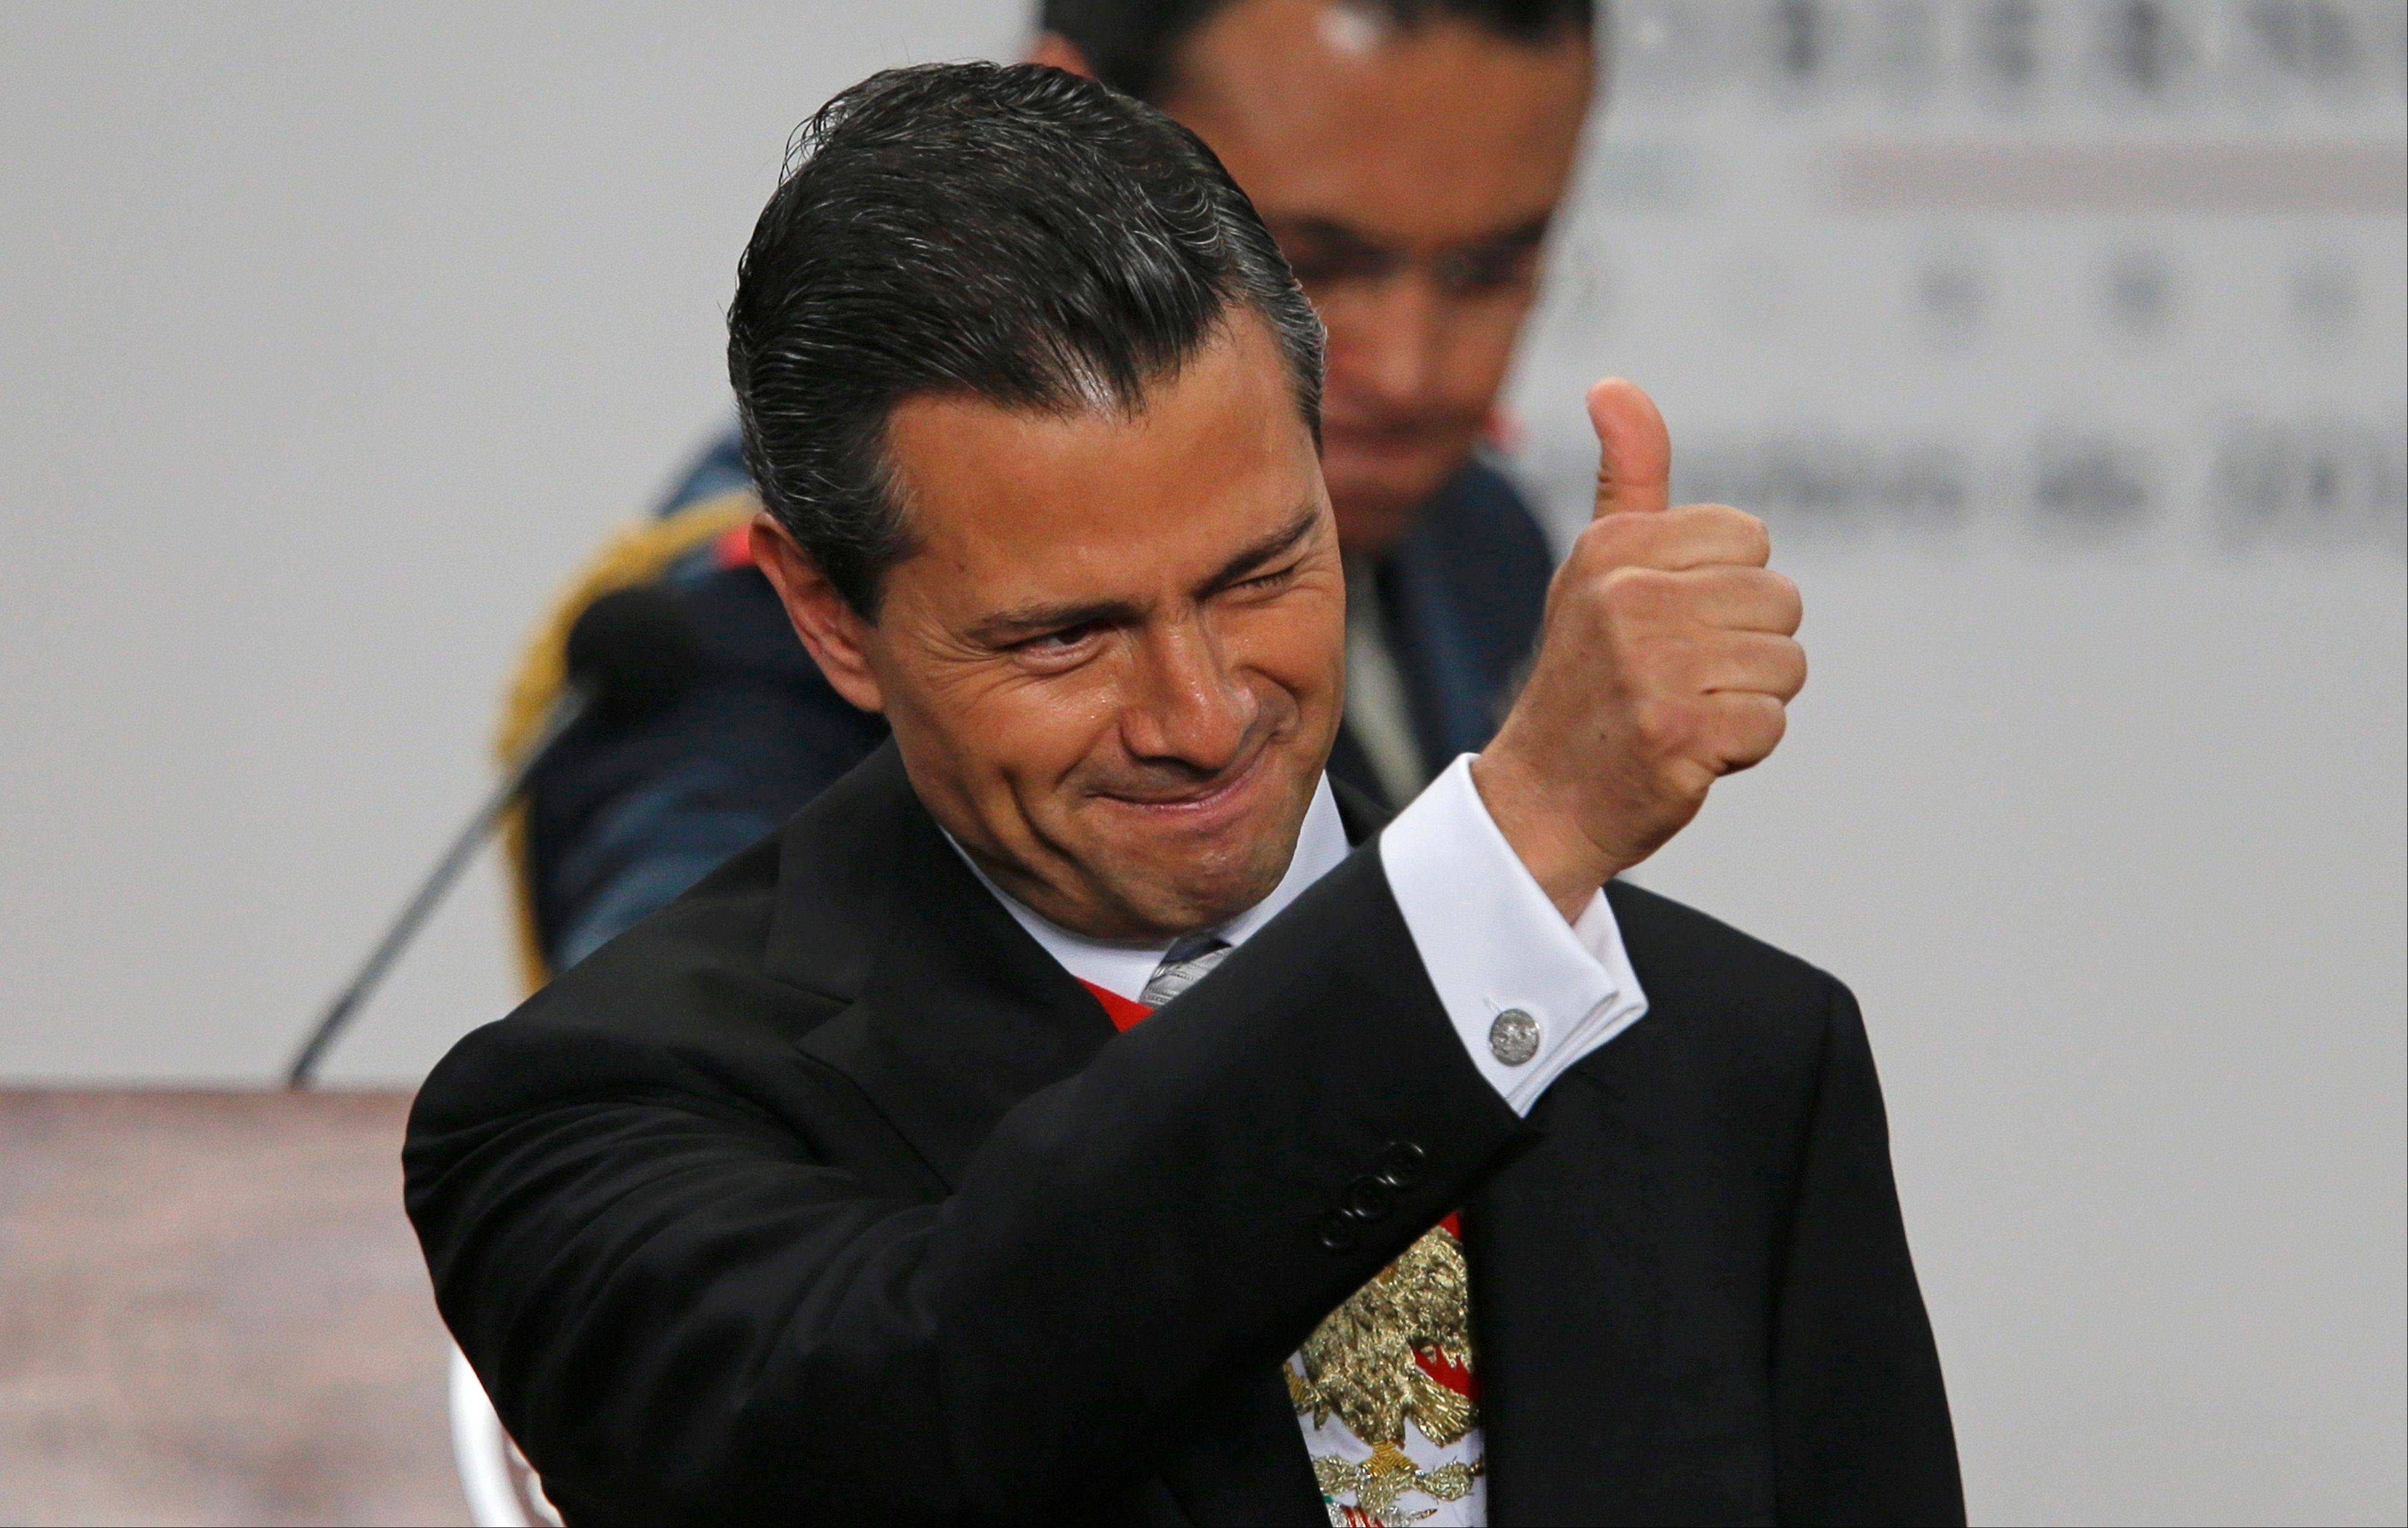 Mexico's President Enrique Pena Nieto gives a thumbs up as he gives his first state-of-the-nation address at Los Pinos presidential residence in Mexico City, Monday, Sept. 2, 2013. Pena Nieto opened his address by praising the passage of a key education reform just hours earlier.